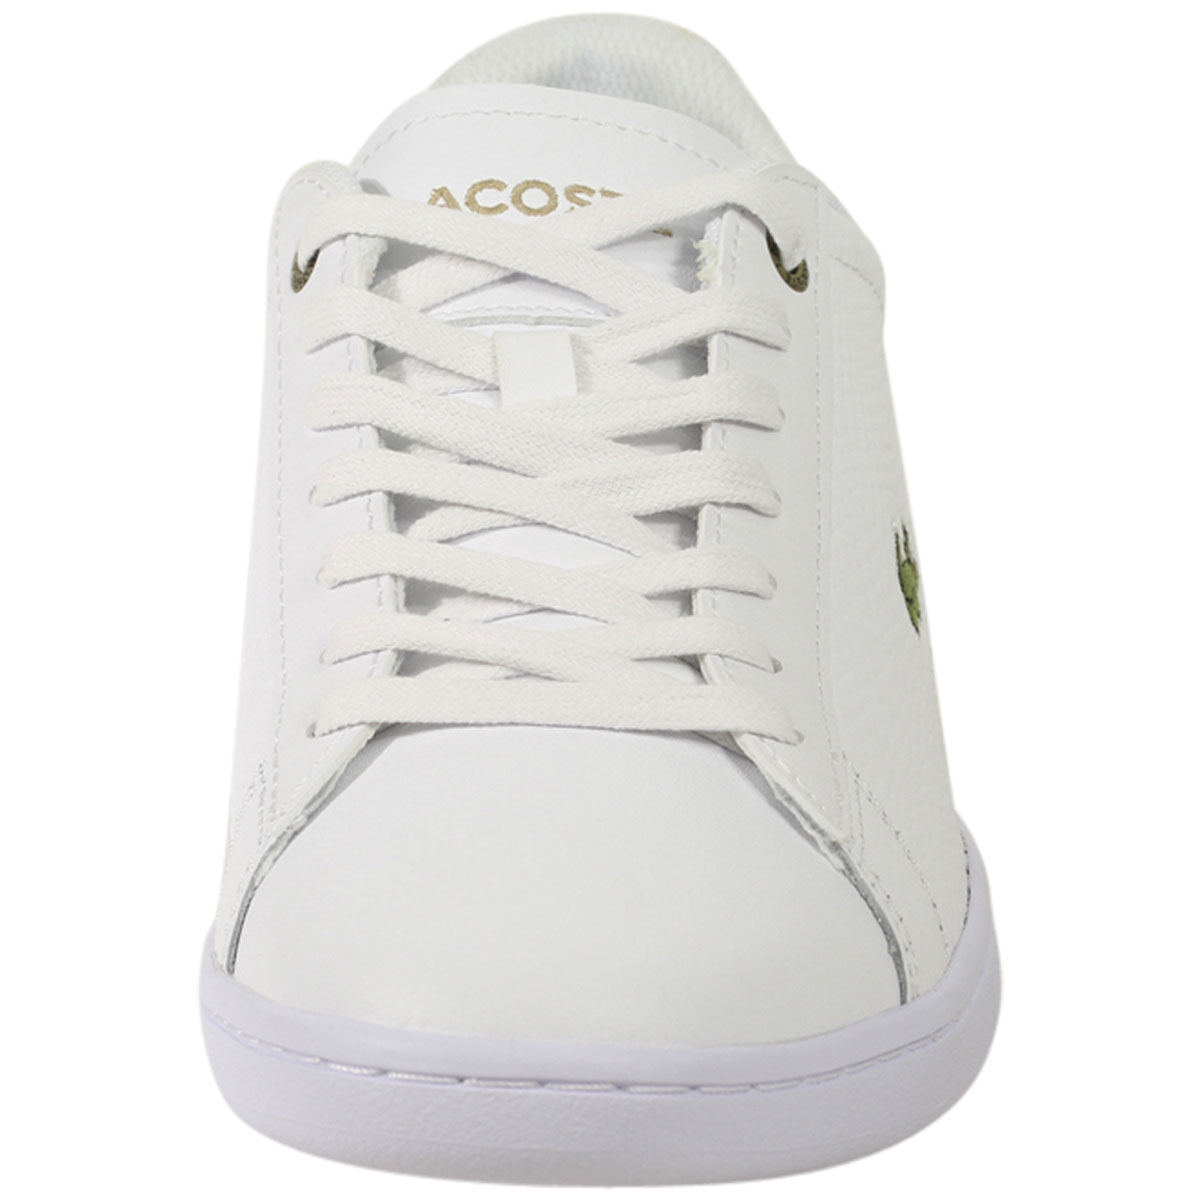 Lacoste-Men-039-s-Carnaby-EVO-118-Trainers-Sneakers-Shoes thumbnail 23